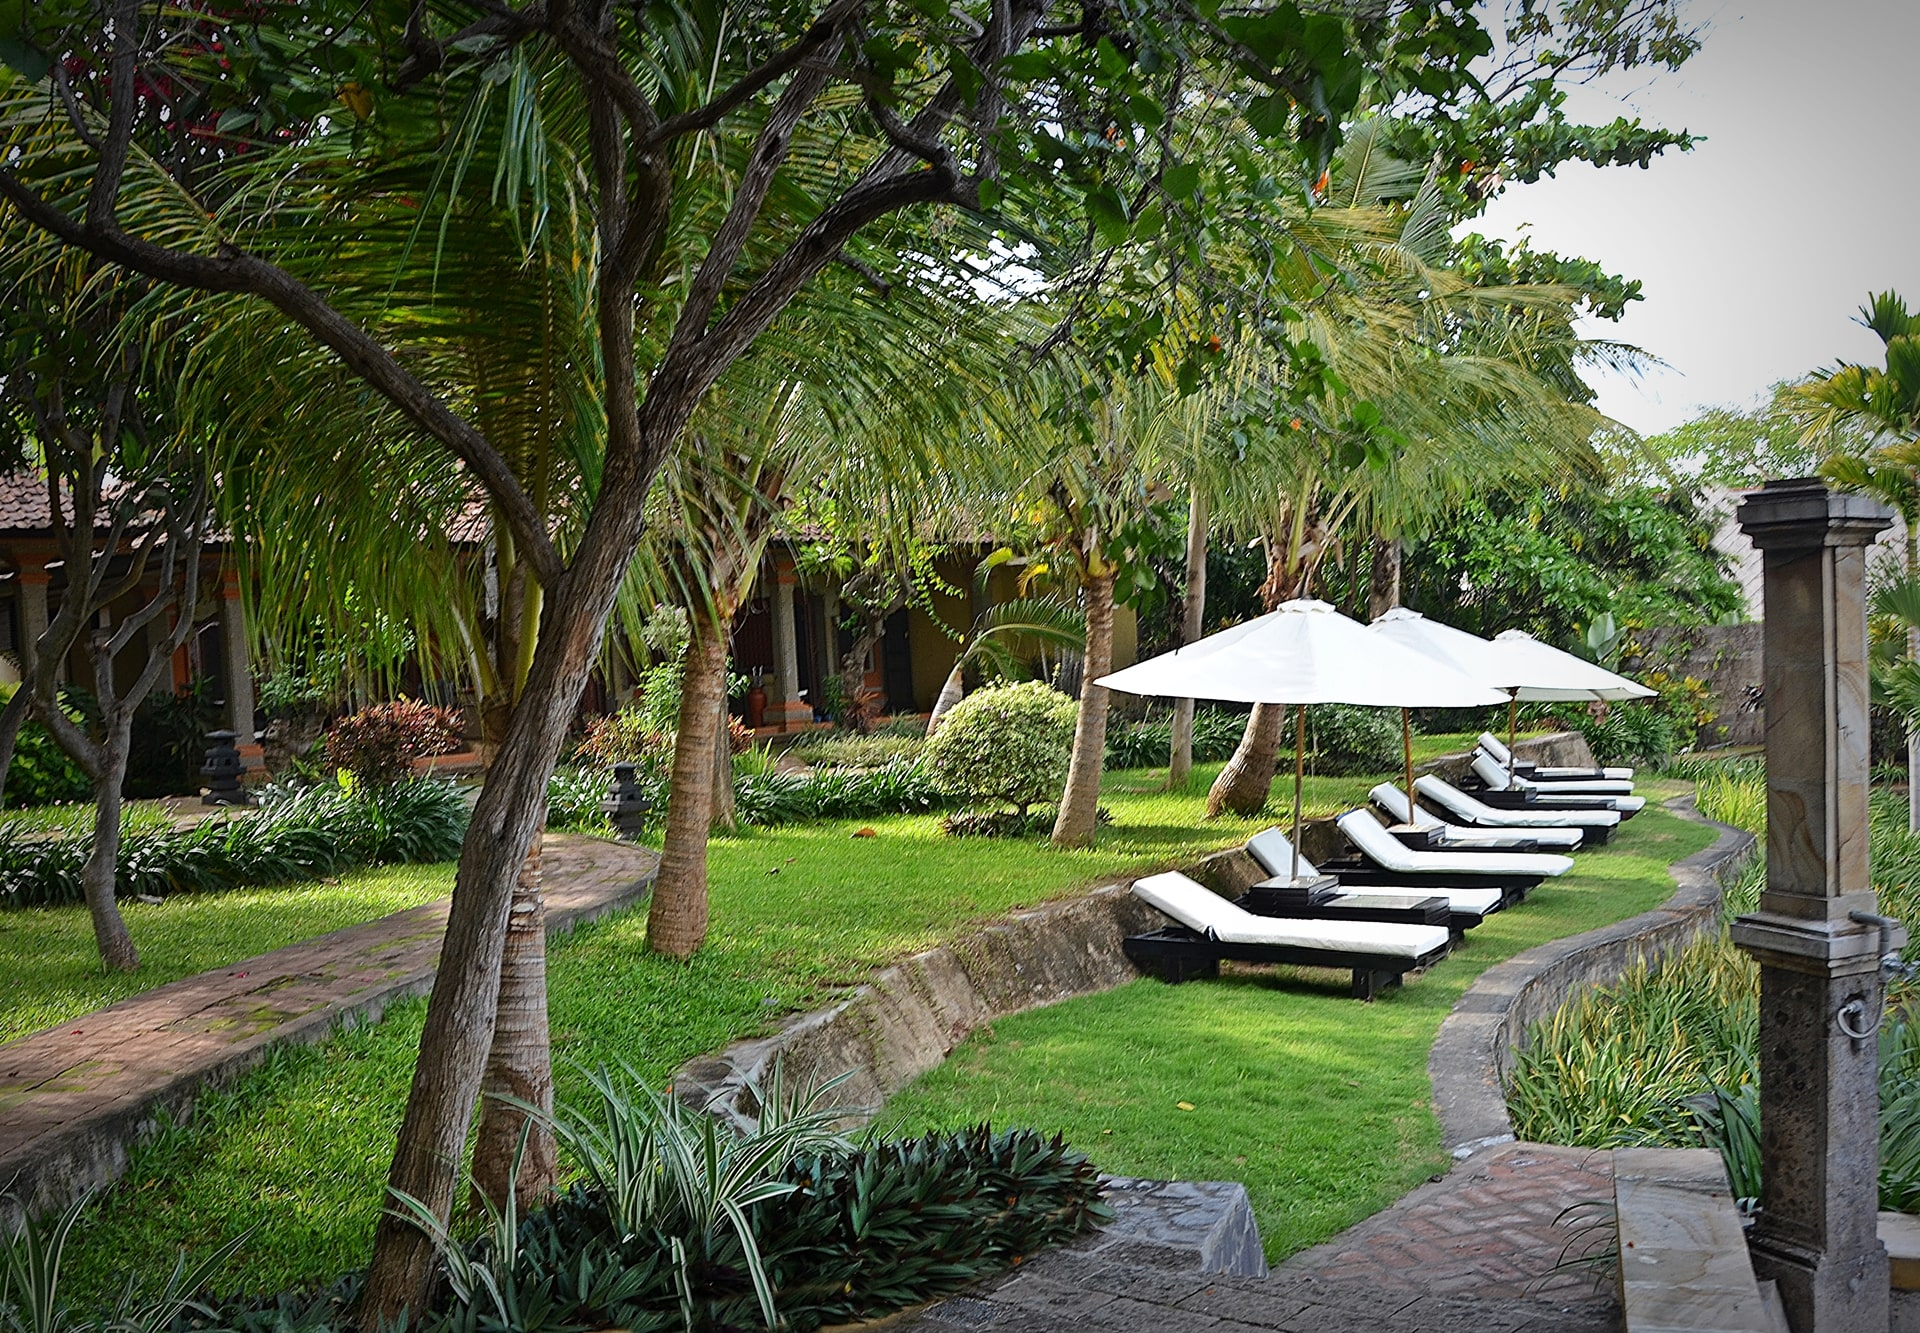 13 Nights 14 Days Zen Ayurveda-Yoga Health Retreat in Bali